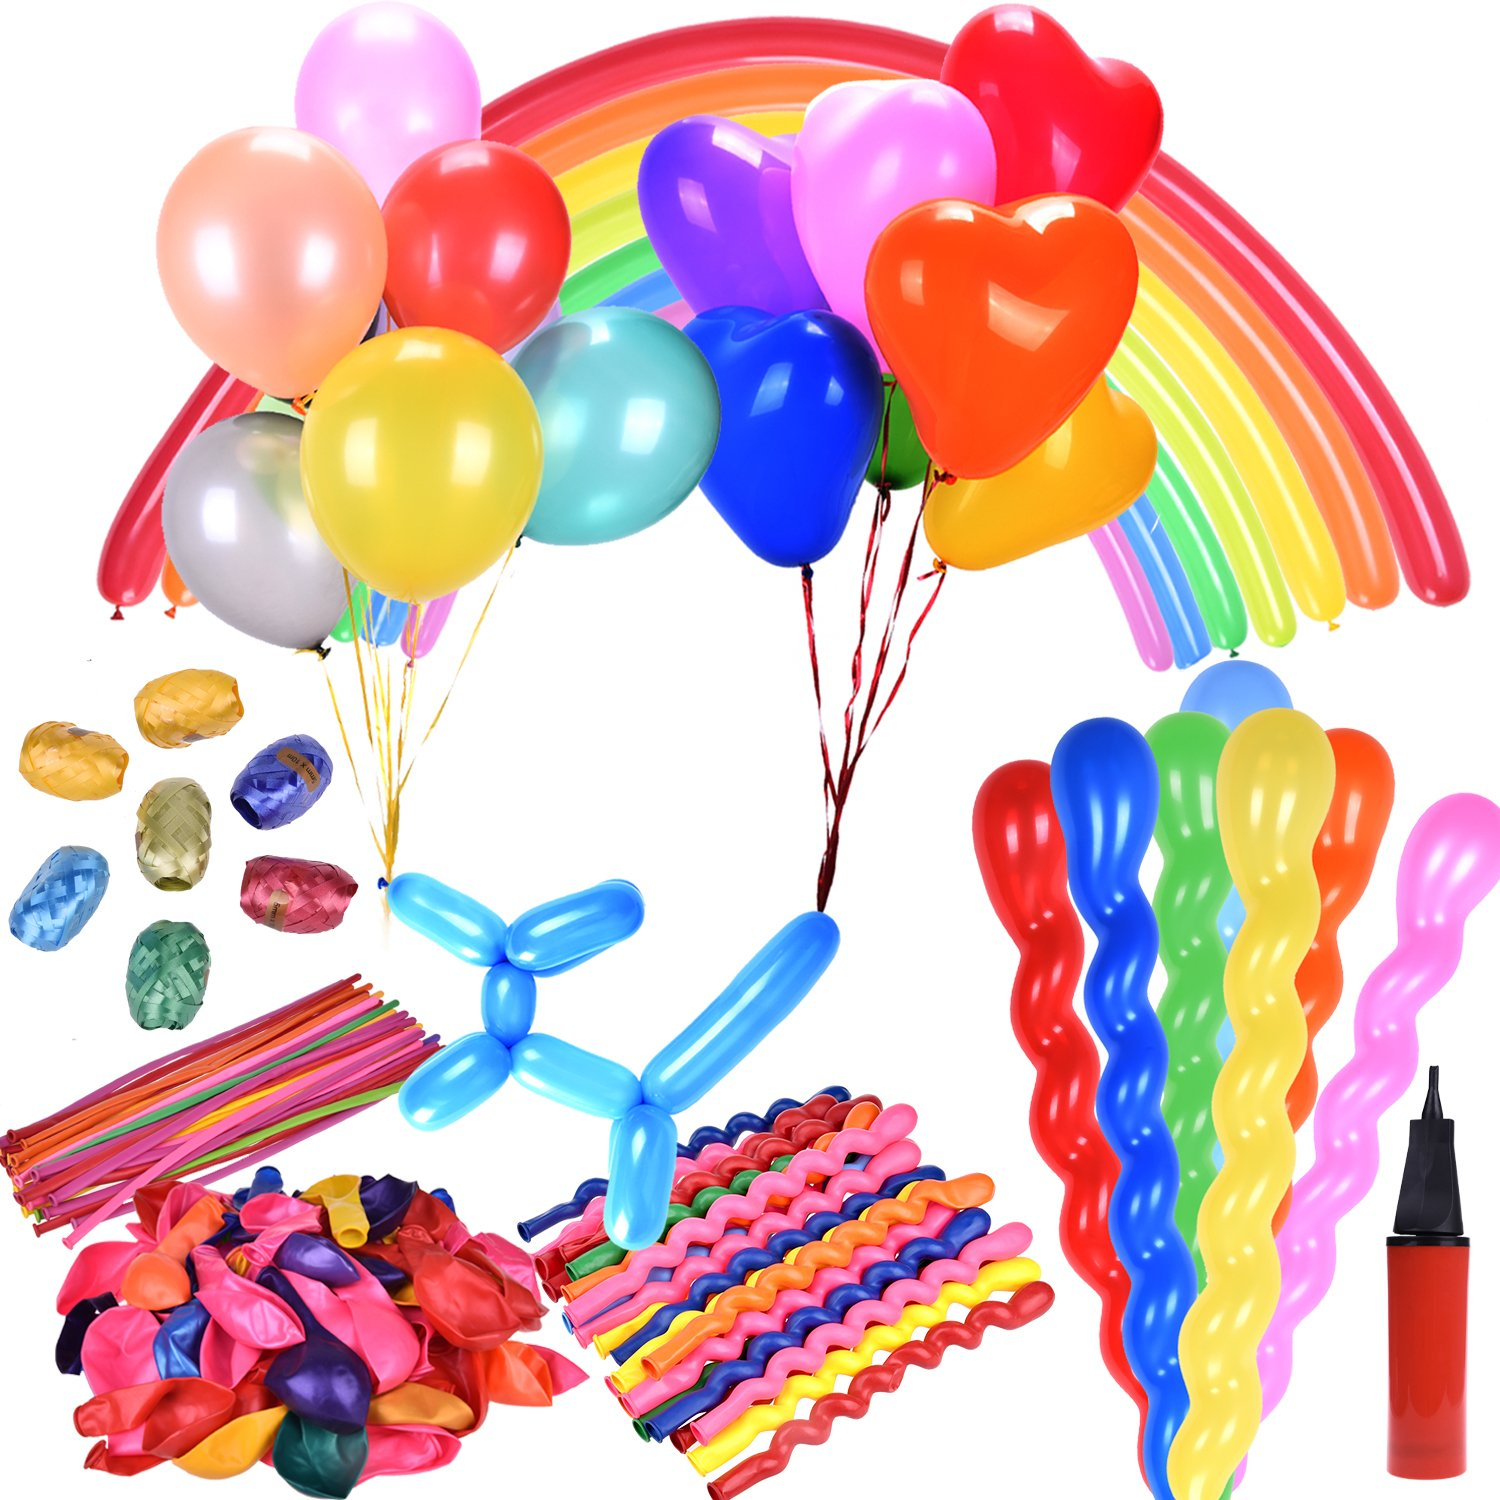 180 PCs Party Favor Balloons Assorted Color 4 Styles for Wedding,Birthday Party Decorations and Supplies (1 Air Pump Inflator and 8 Ribbons Included)